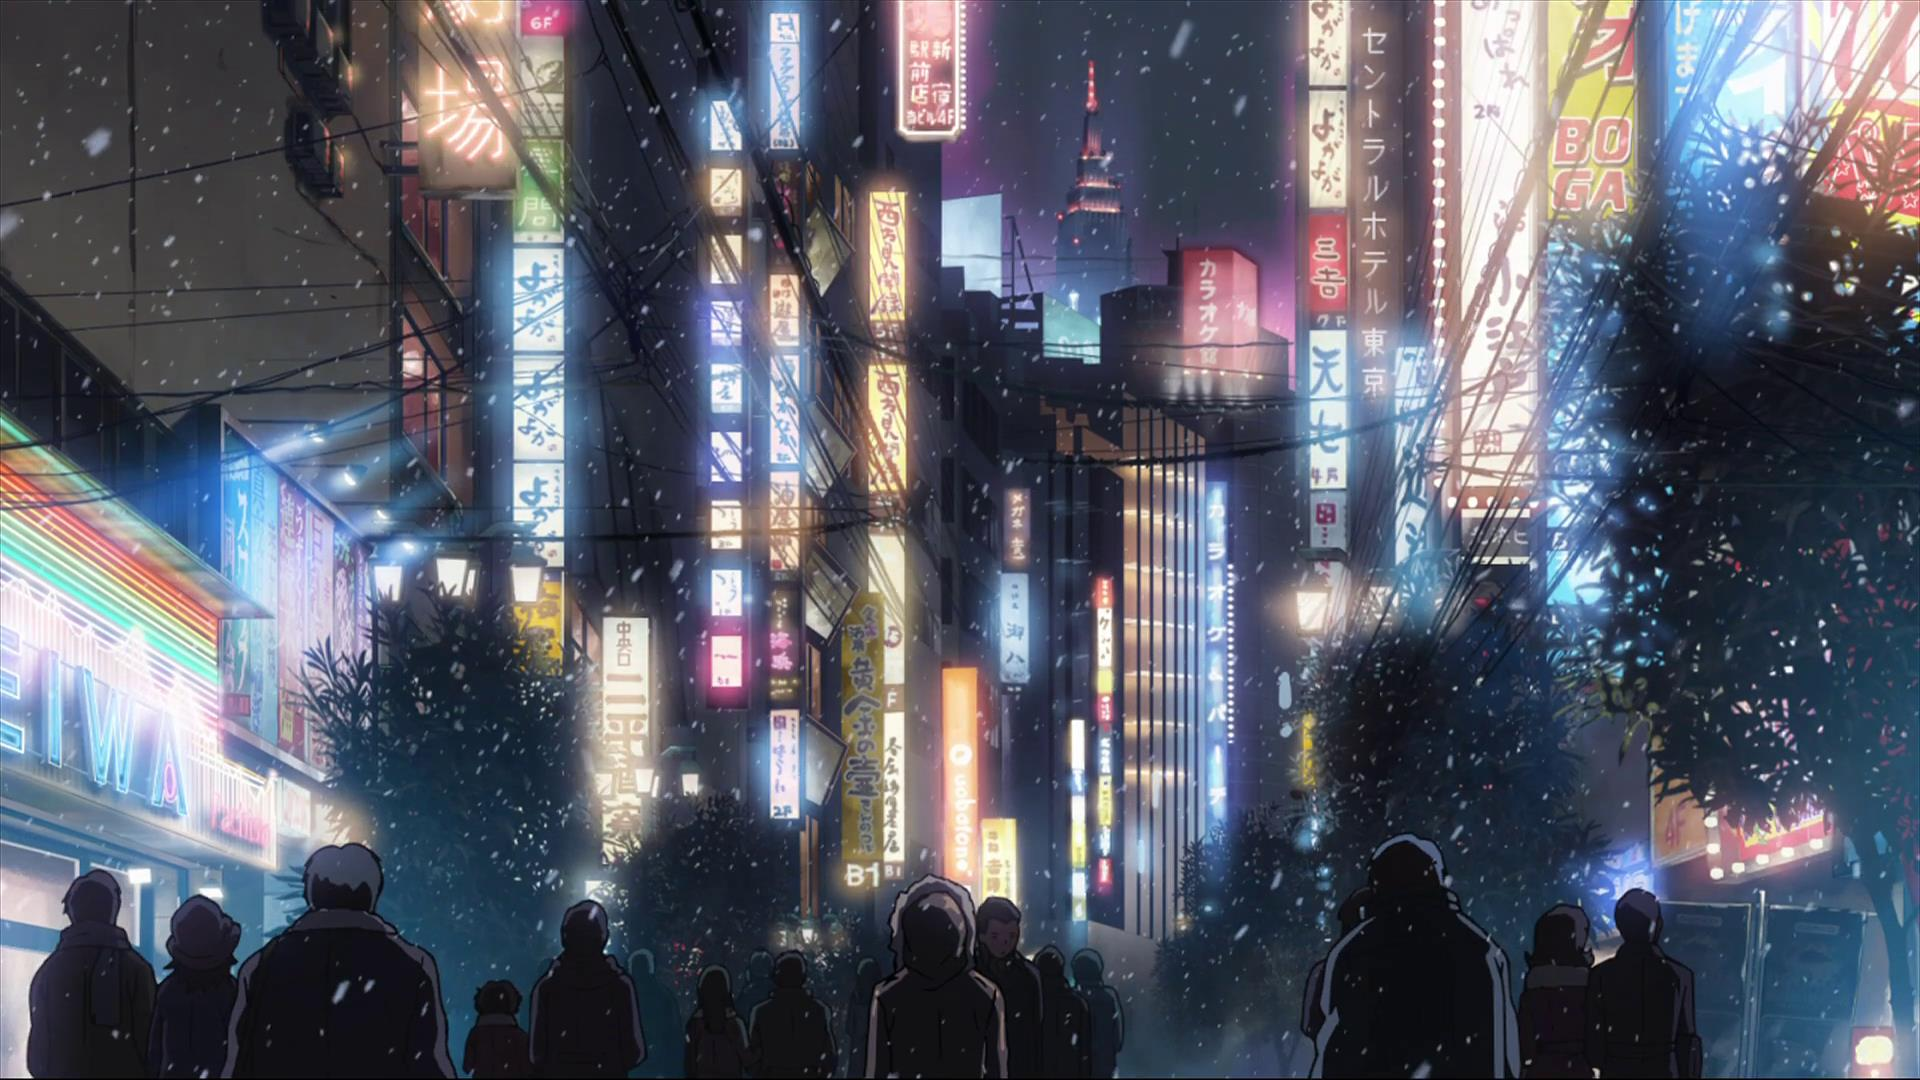 Japanese Anime City Wallpapers - Top Free Japanese Anime City Backgrounds -  WallpaperAccess